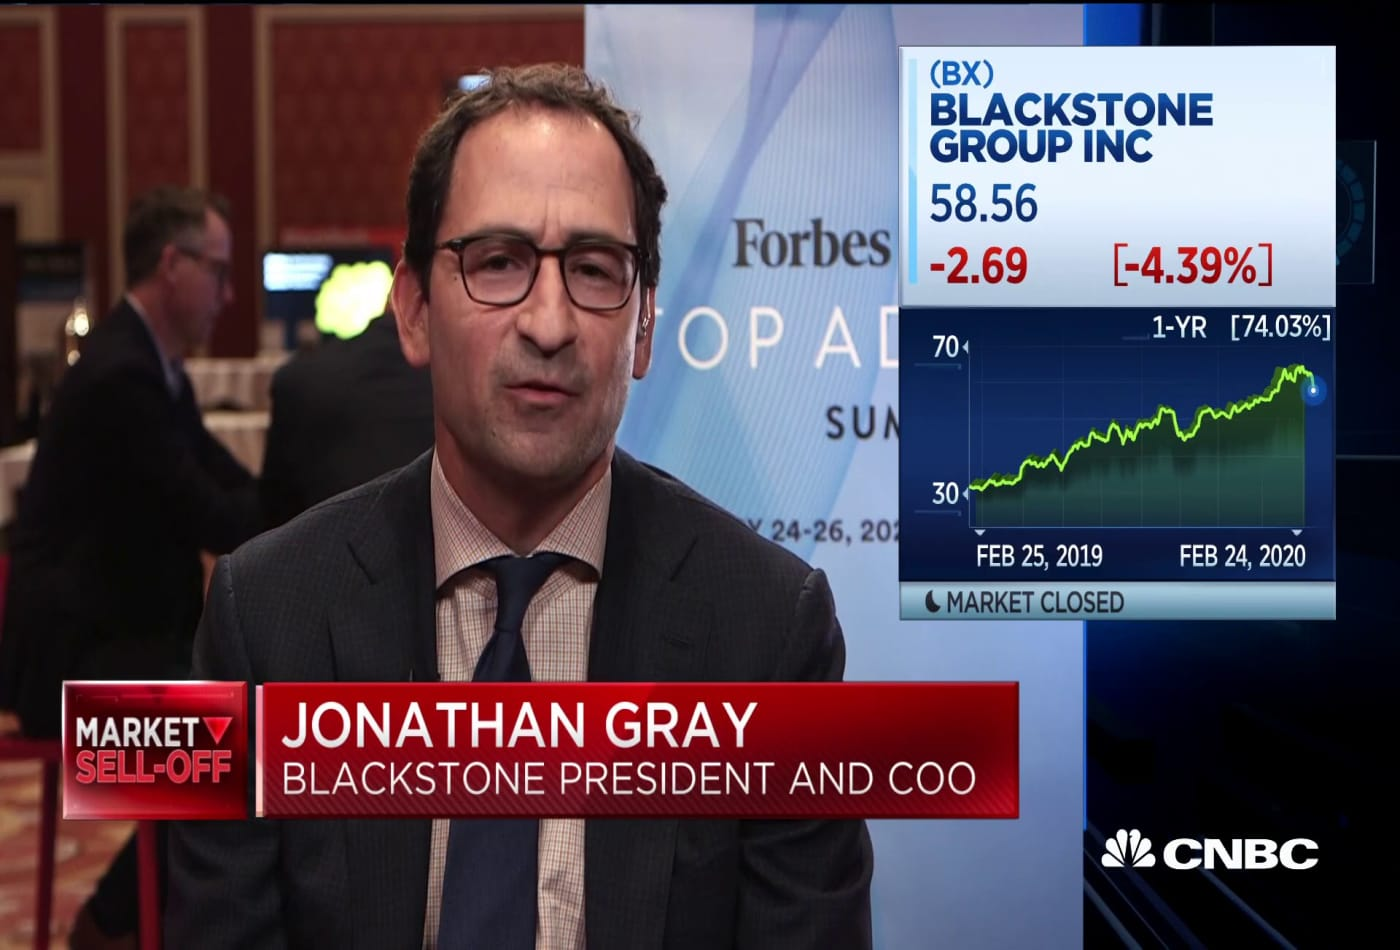 Travel, energy-related businesses can be impacted by coronavirus: Blackstone's Gray